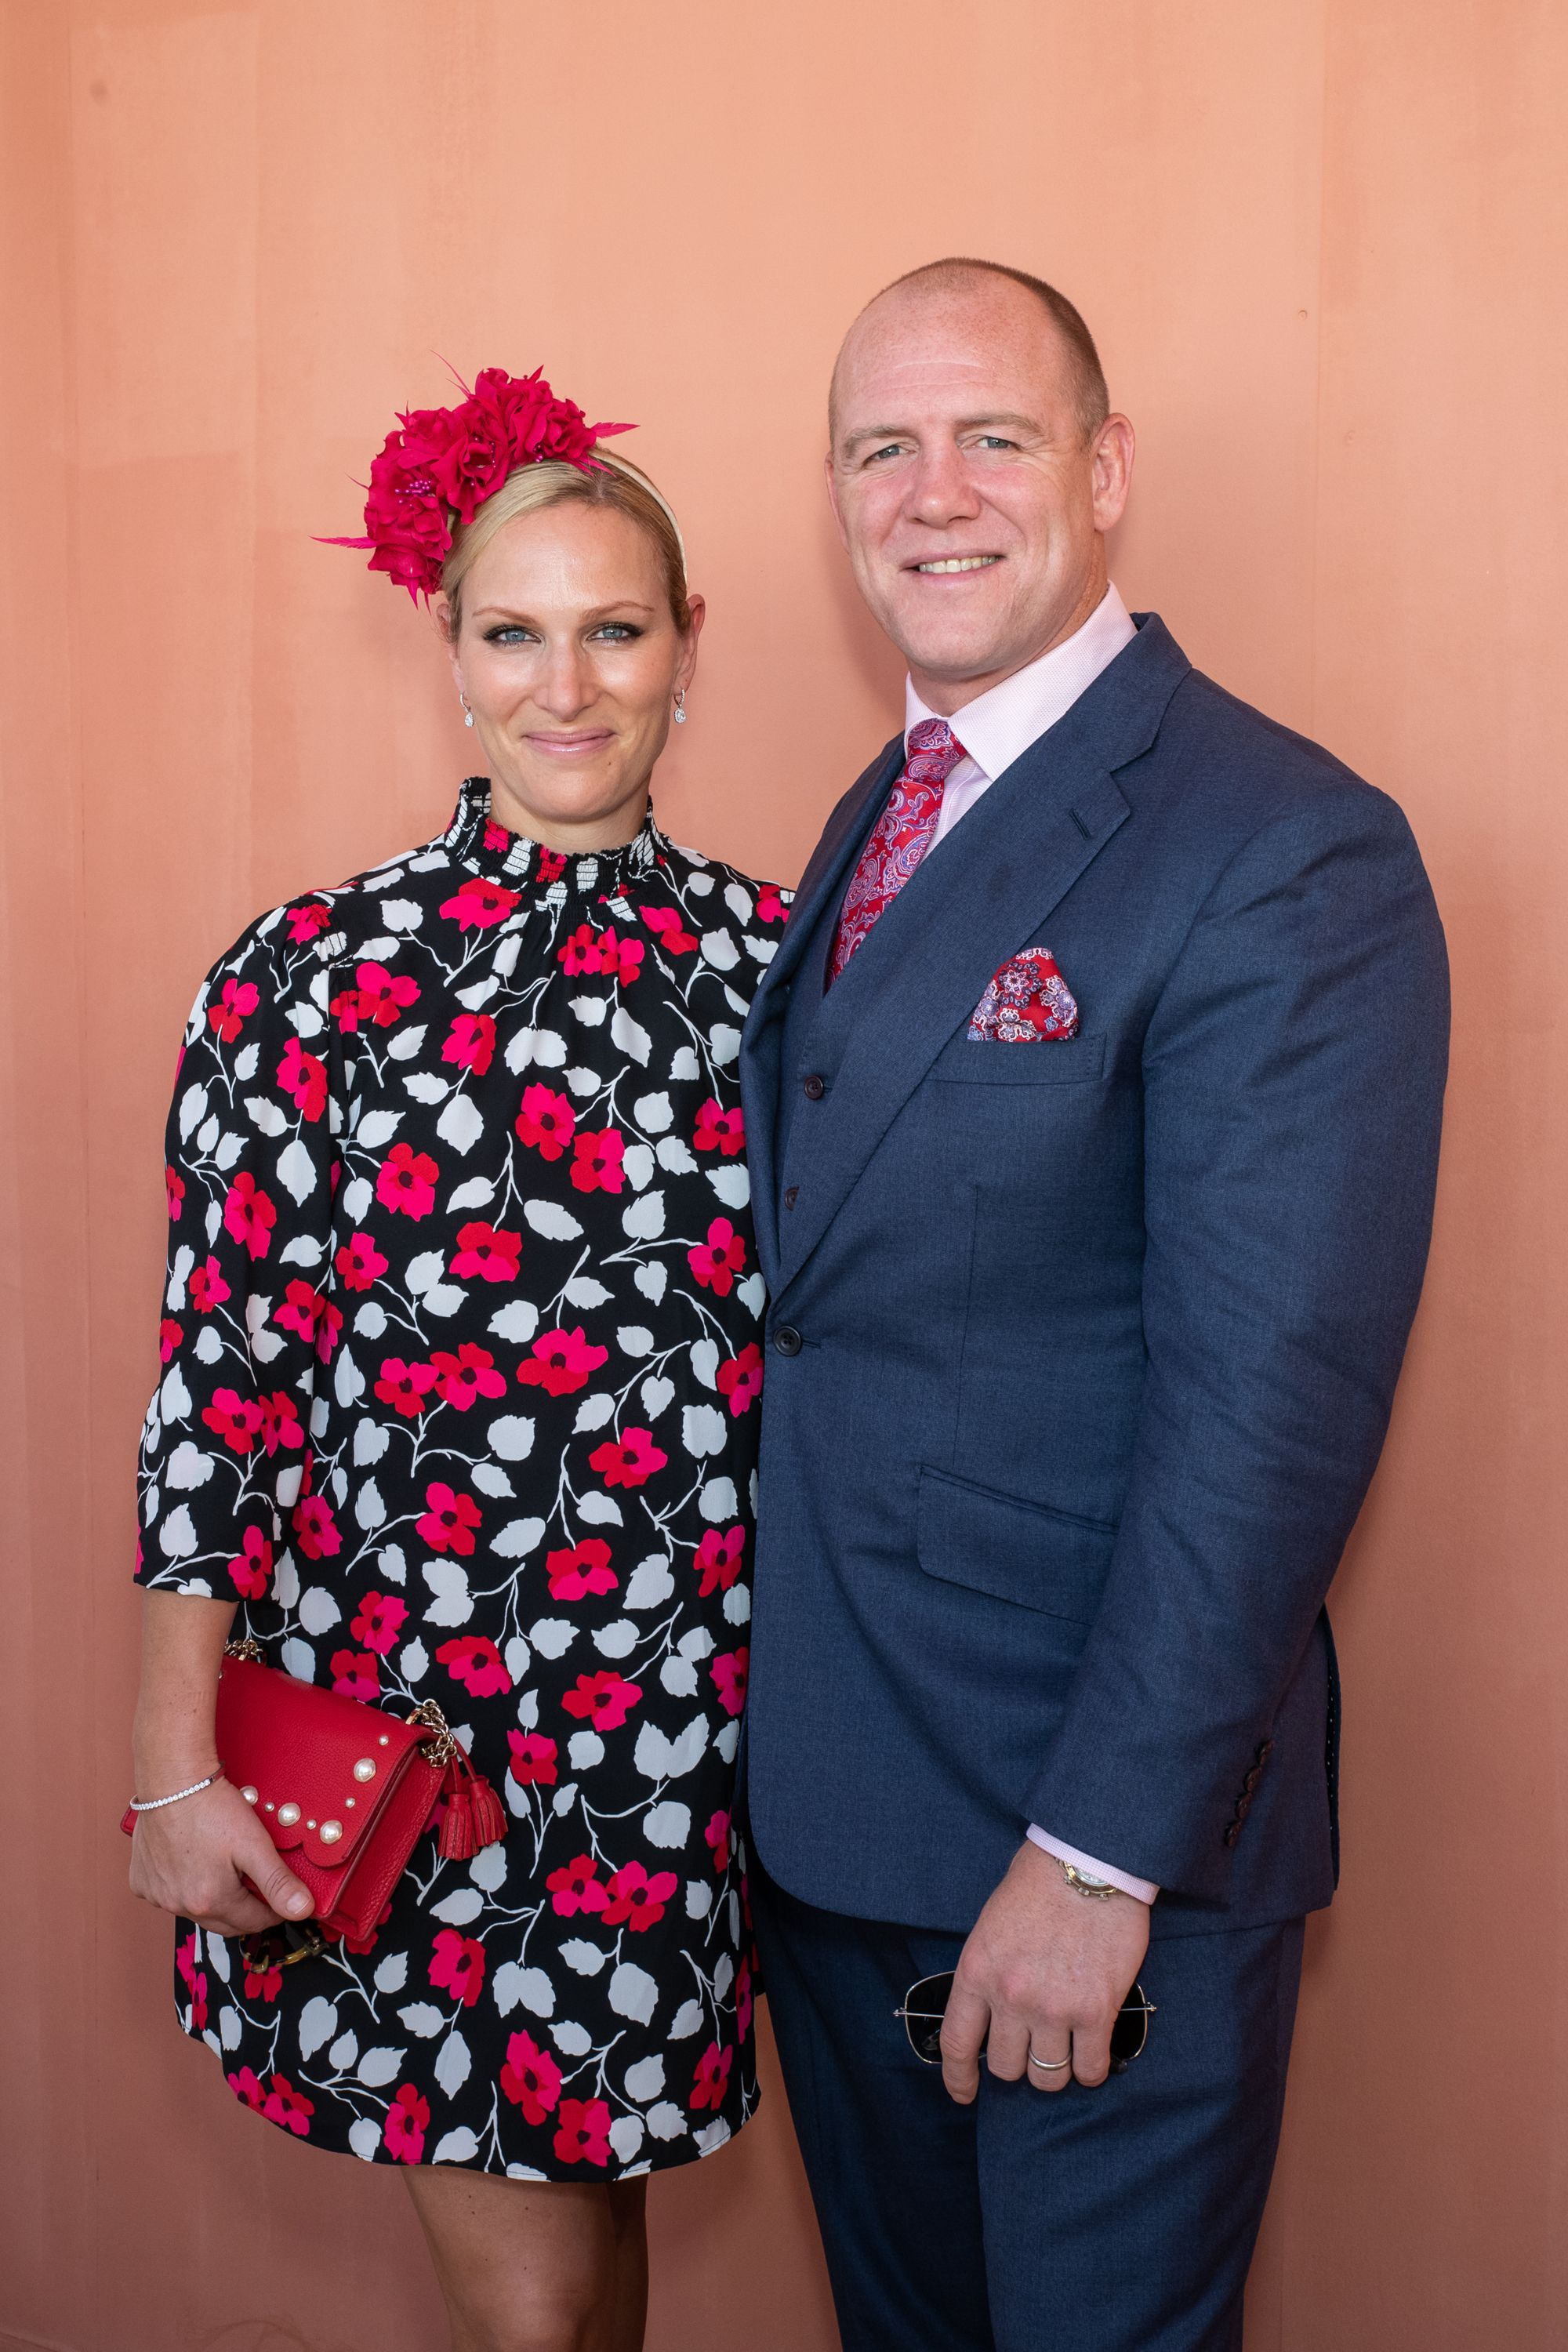 Zara Tindall chose a bright and colorful look as she attended the Magic Millions races with her husband, Mike Tindall, in Gold Coast, Australia. The former equestrian paired a floral mini dress with a fuchsia fascinator by milliner Meg Rafter , and matching clutch by Kate Spade .